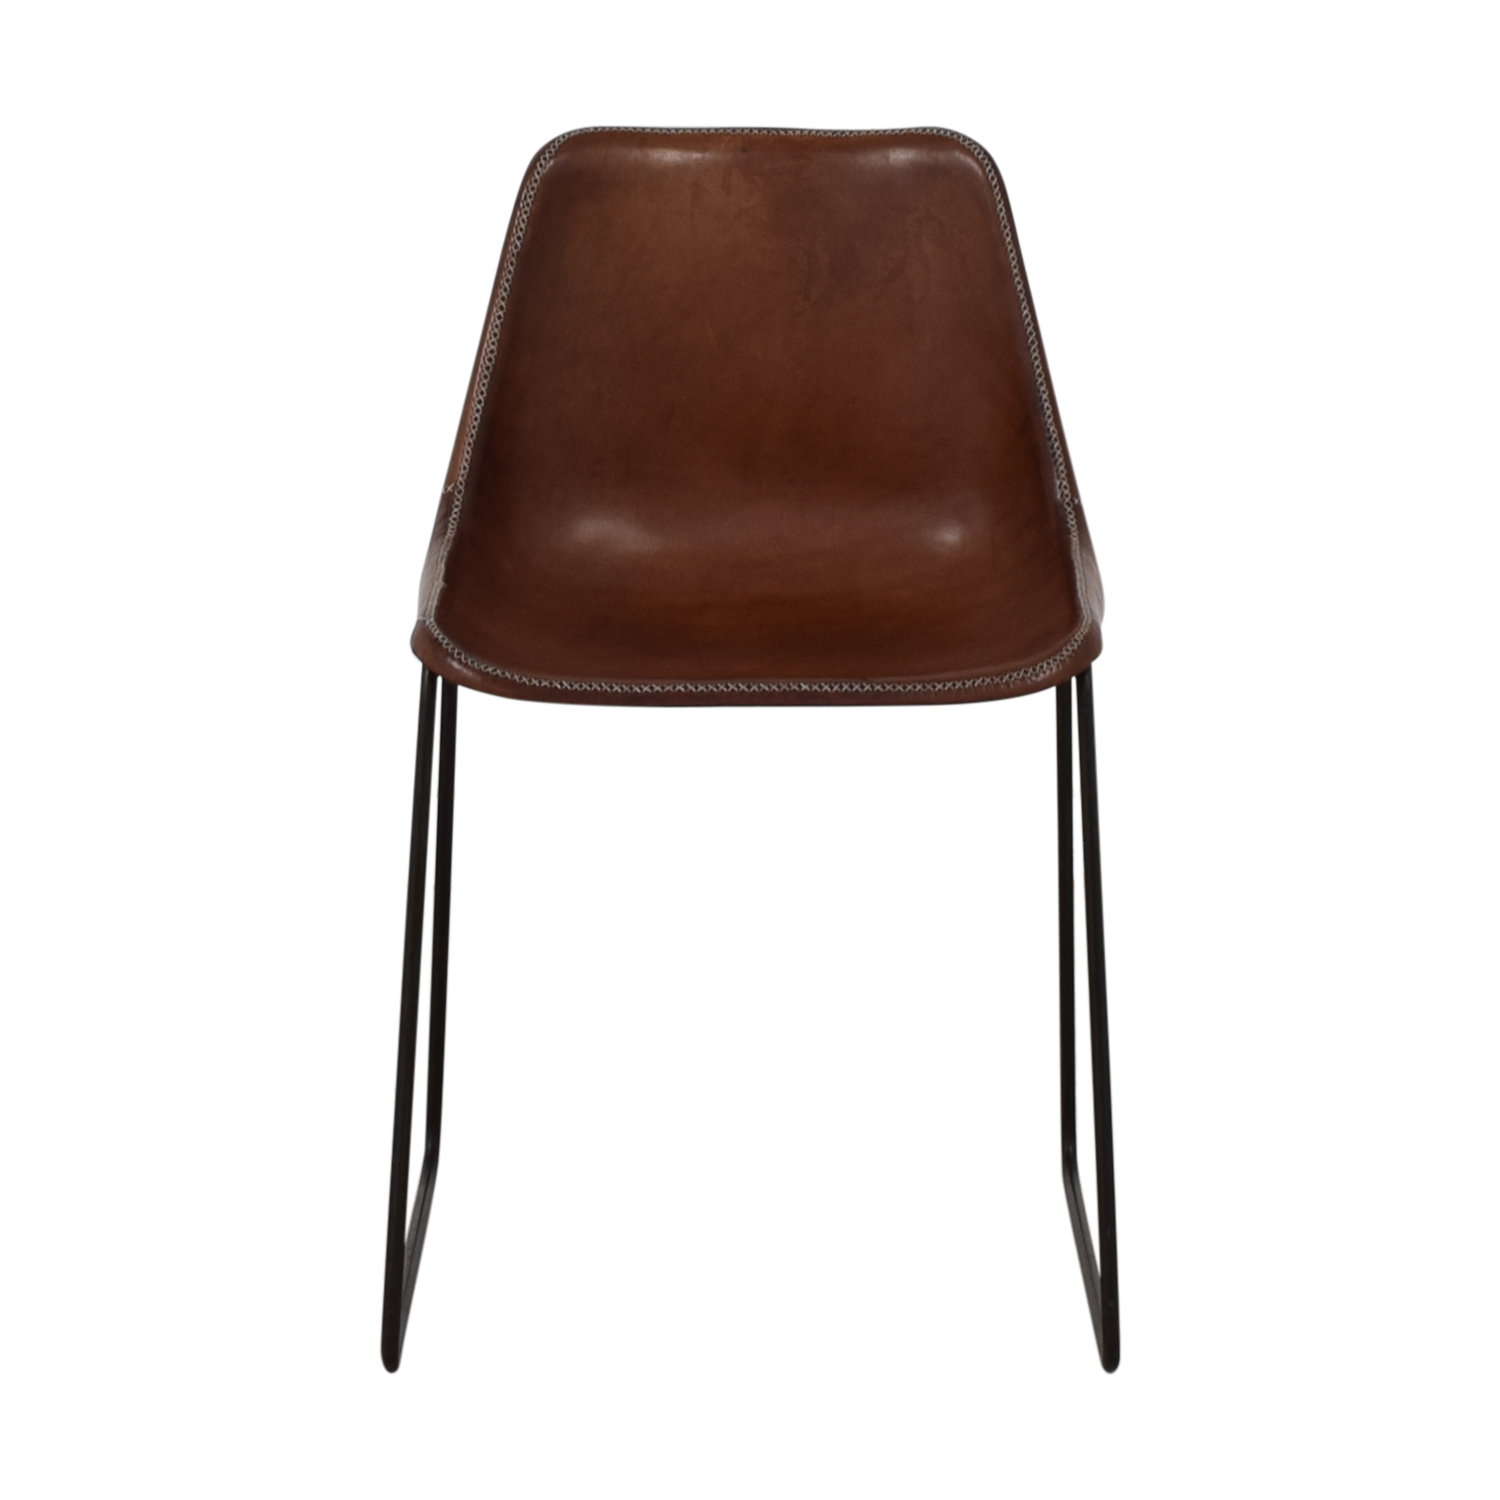 shop ABC Carpet & Home ABC Carpet & Home Giron Brown Leather Chair online